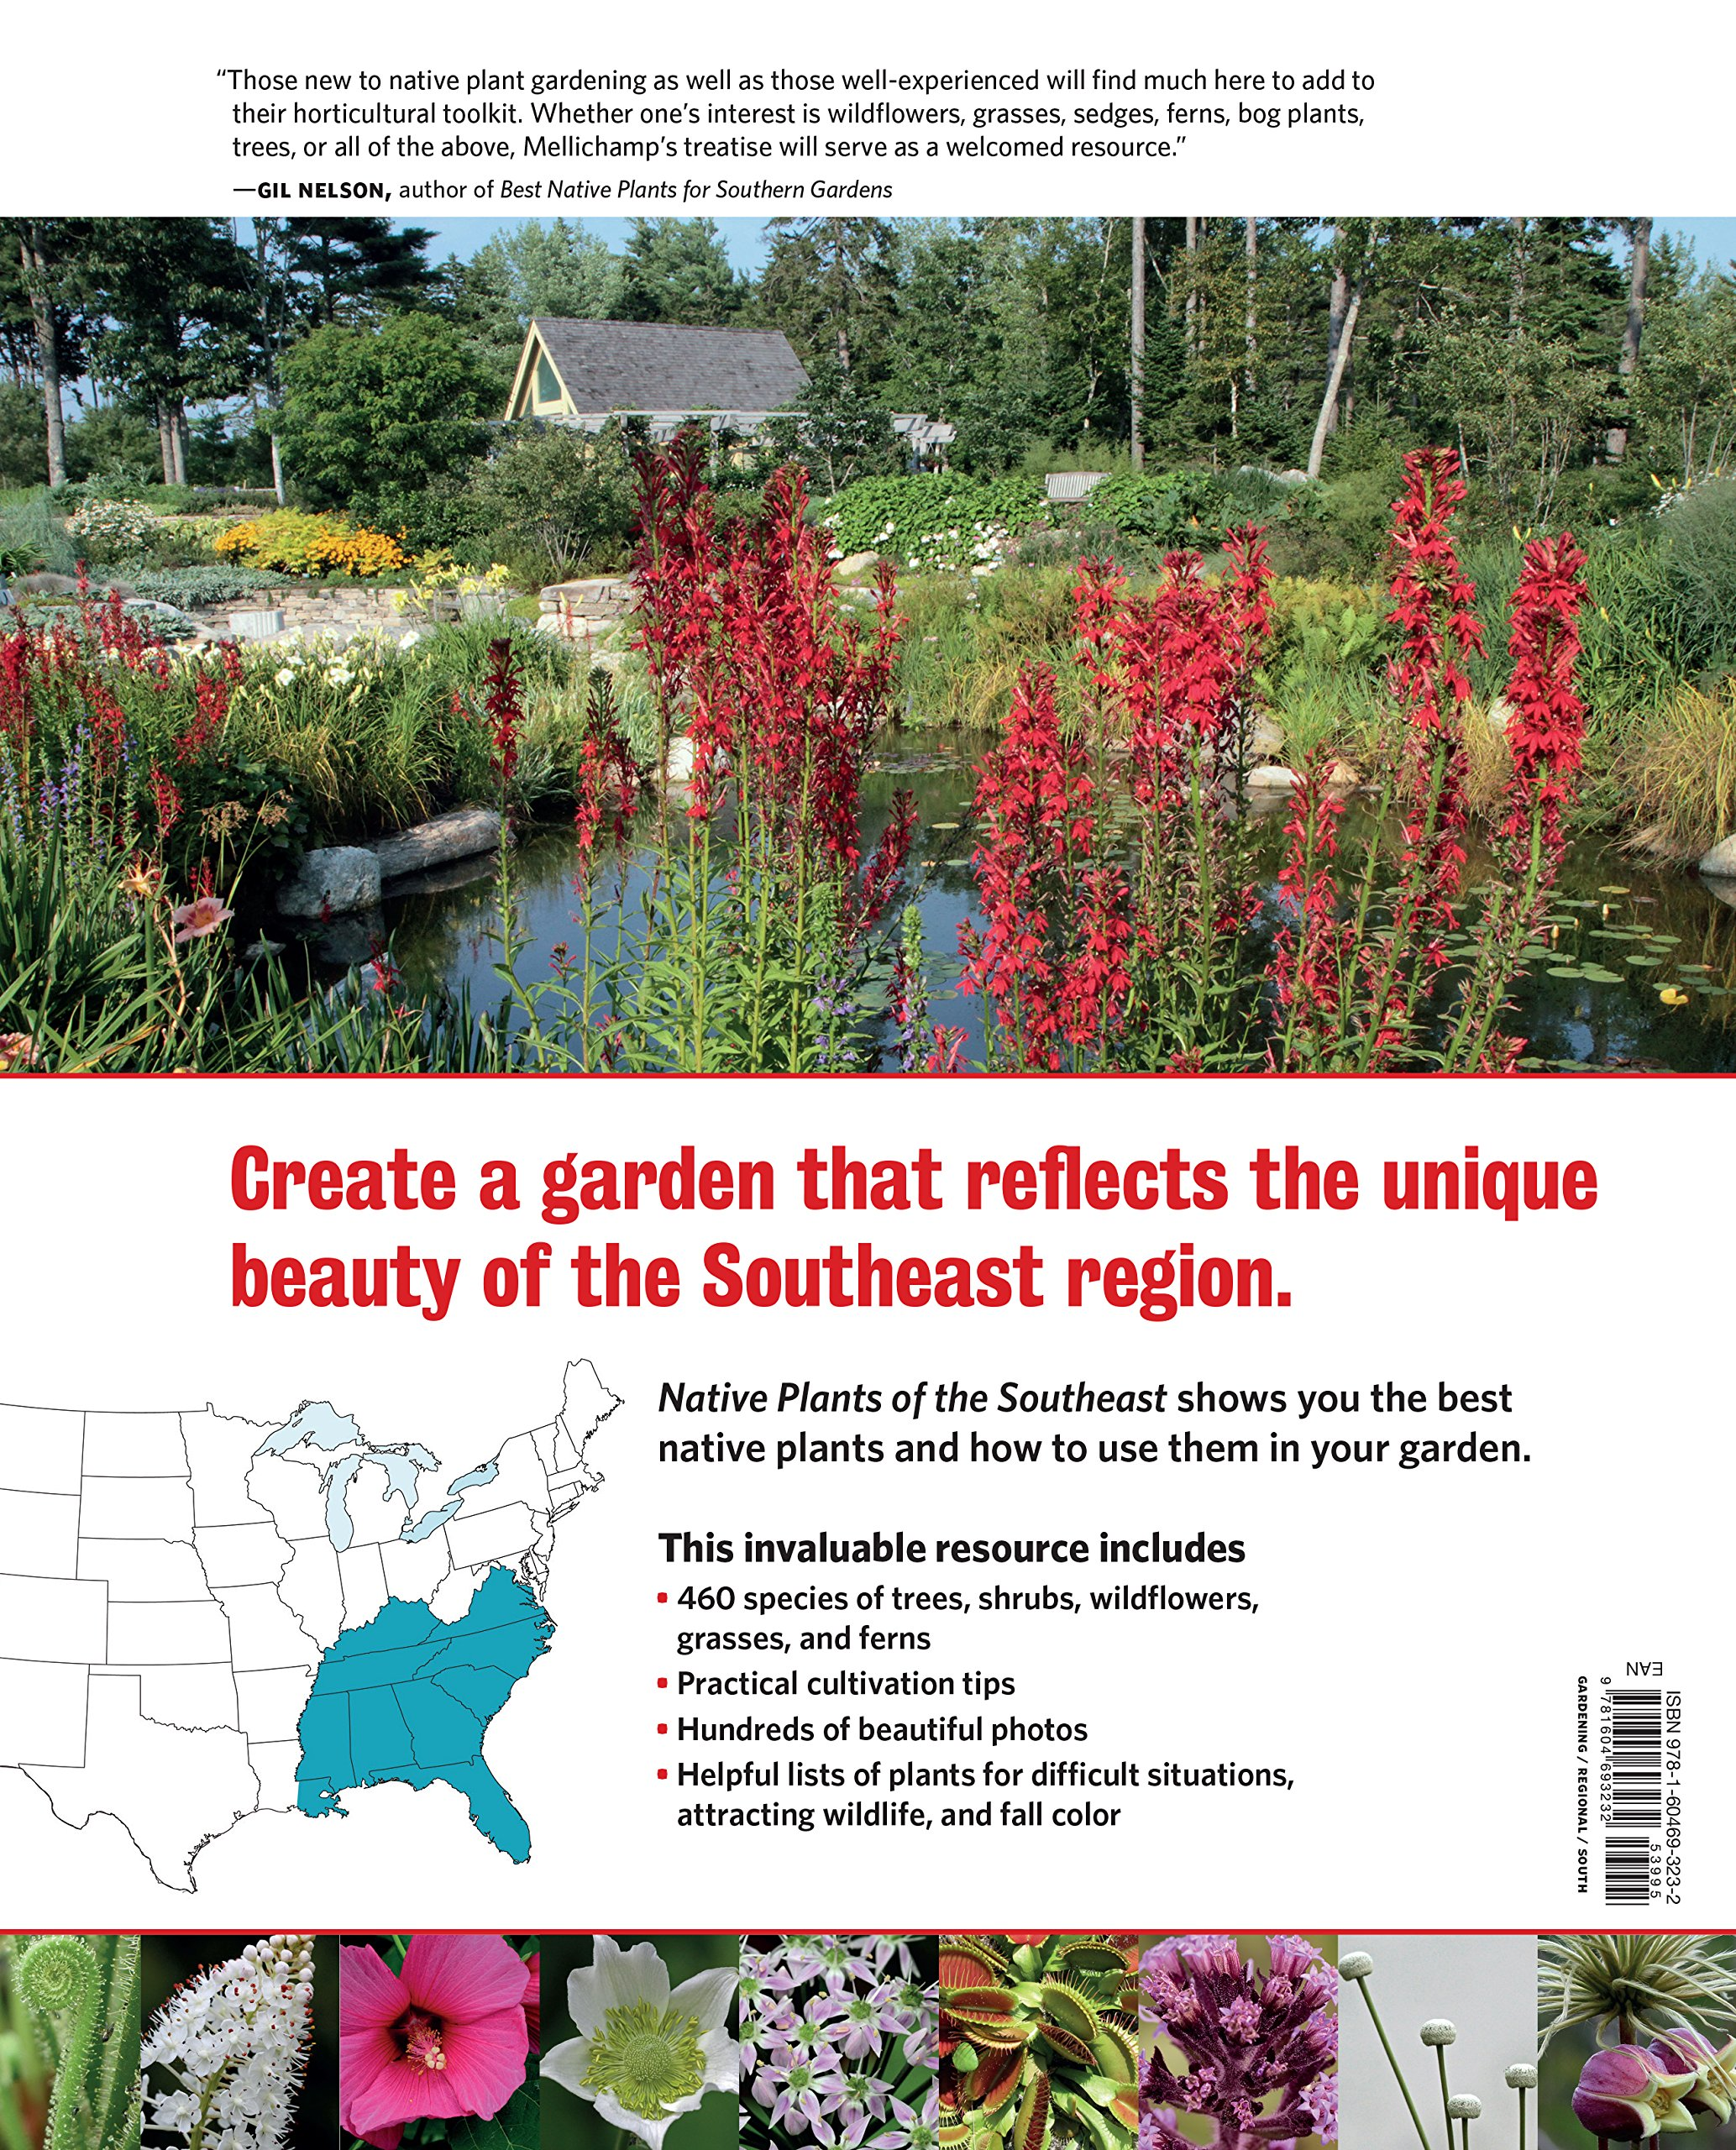 Native Plants Of The Southeast: A Comprehensive Guide To The Best 460  Species For The Garden: Larry Mellichamp, Will Stuart: 9781604693232:  Amazon.com: ...